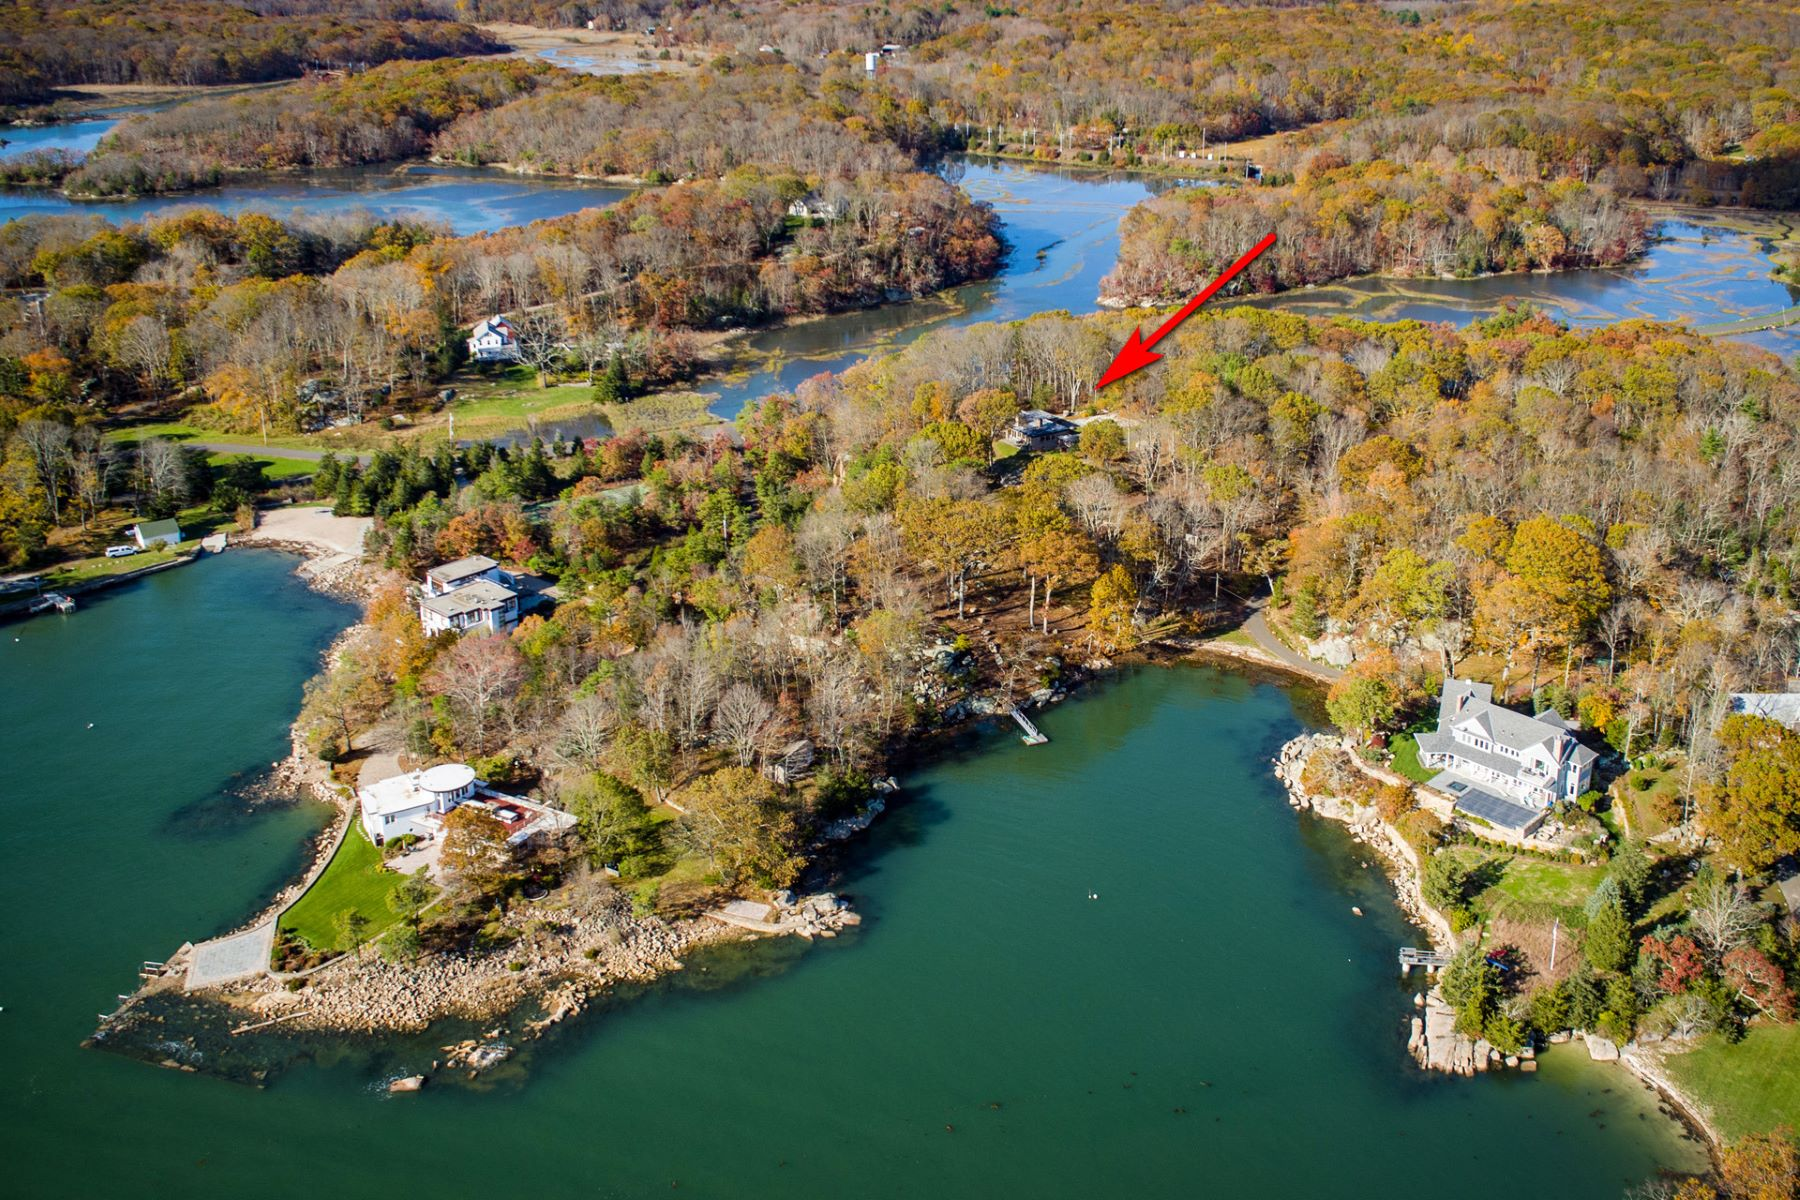 Single Family Home for Sale at Mid-Century Modern Jewel- Direct Waterfront 170 Old Quarry Road, Guilford, Connecticut, 06437 United States